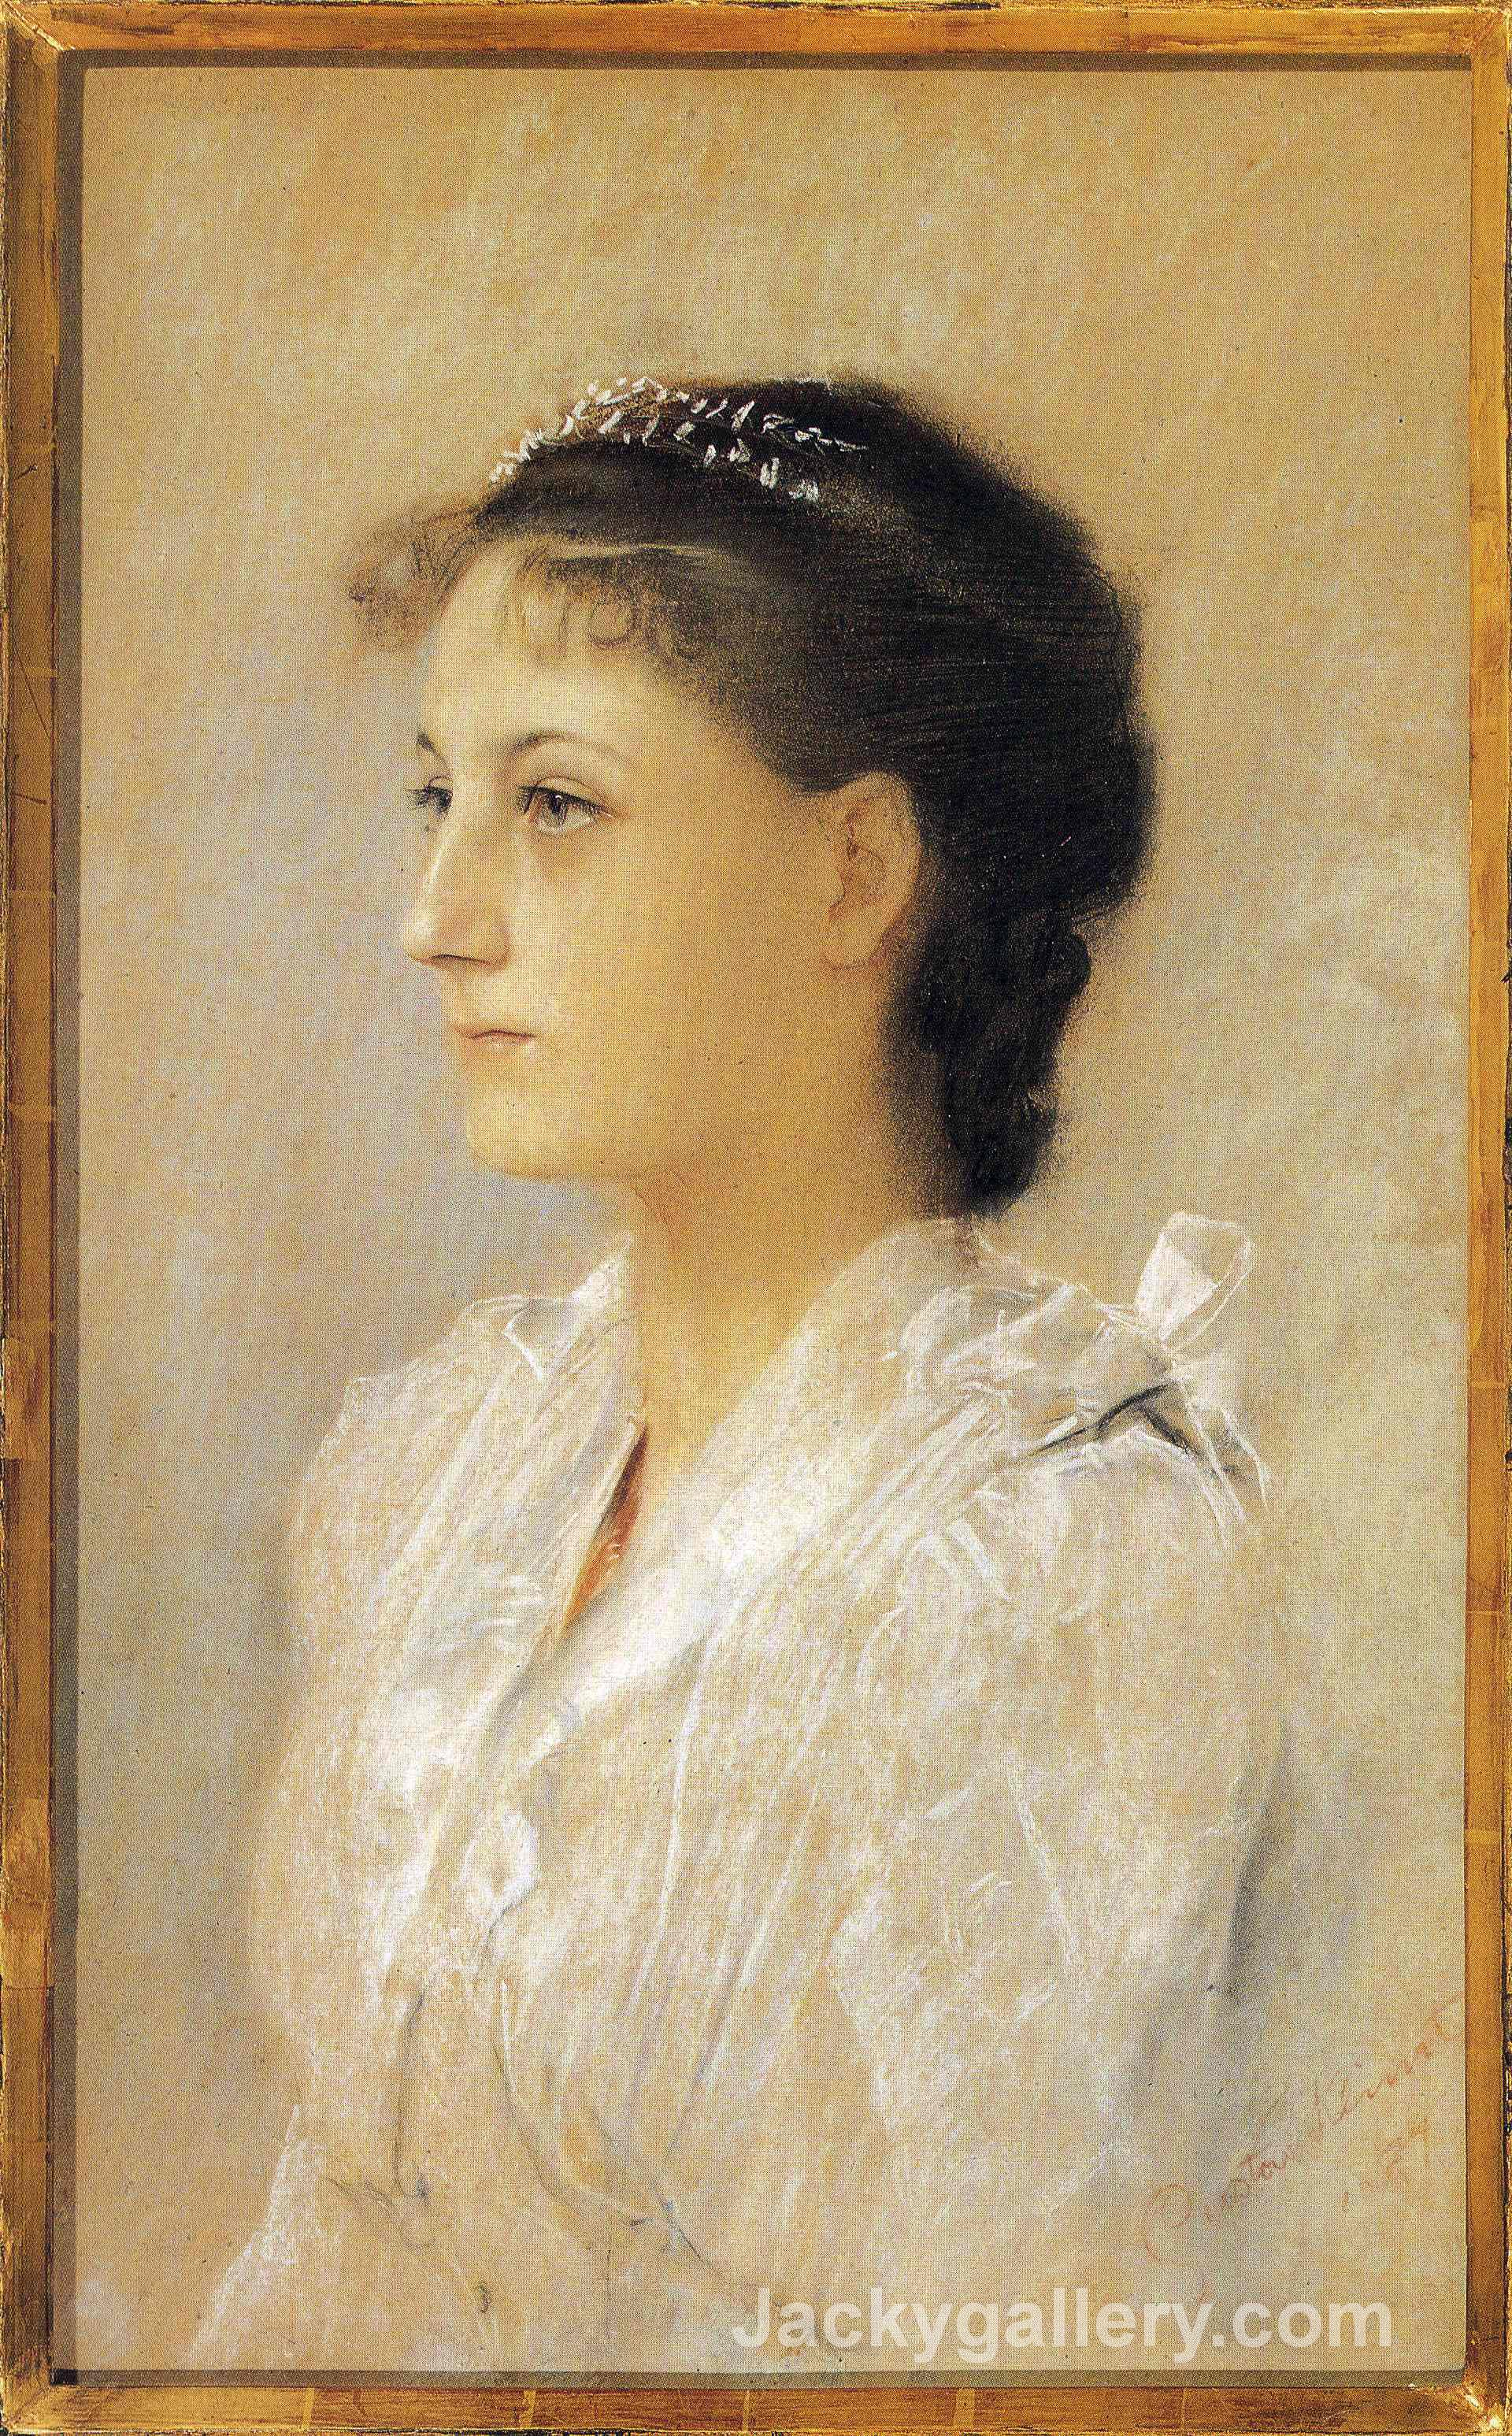 Emilie Floge,Aged 17 by Gustav Klimt paintings reproduction